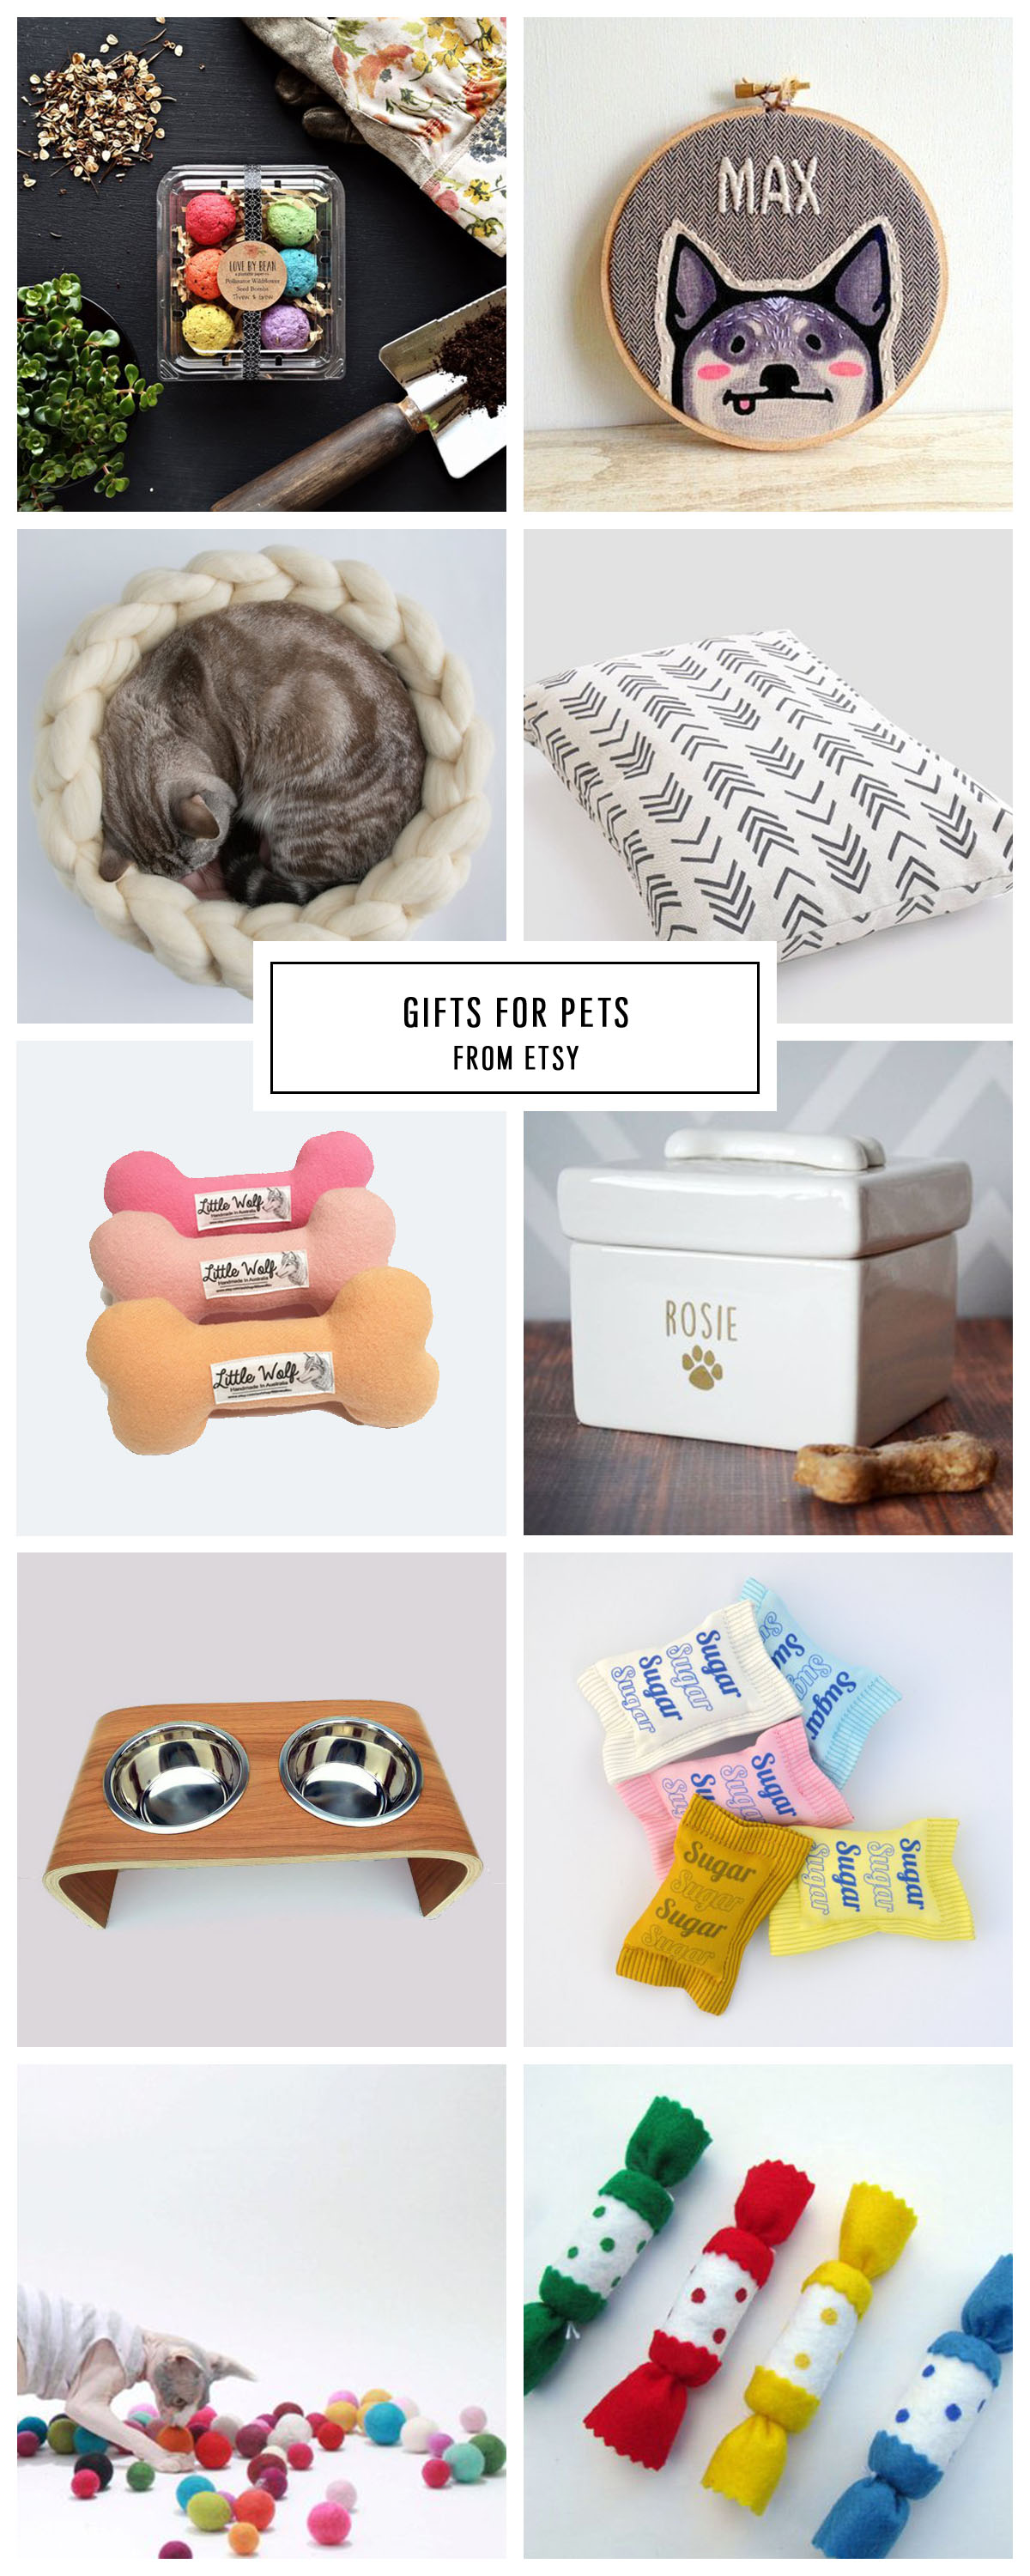 COMPLETE ETSY GIFT GUIDE FOR PETS UNDER $75 by Houston lifestyle blogger Ashley Rose of Sugar and Cloth -- #giftguide #christmas #entertaining #holidaygifts #presents